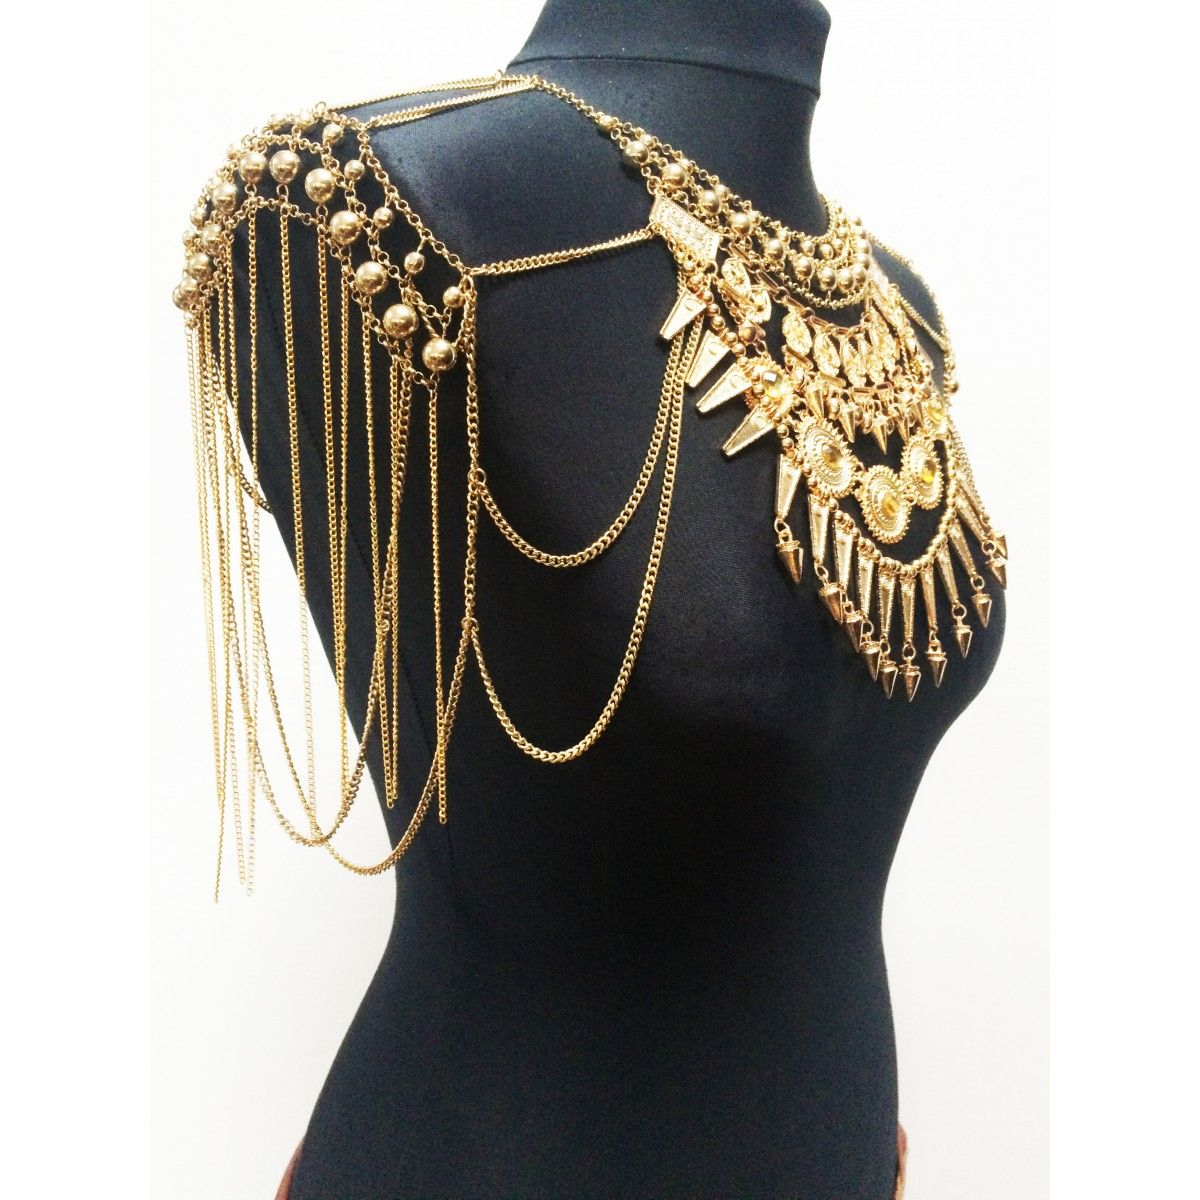 WE KOKO Fashion Gypsy Cape Gold Jewellery Shop Top Fashion